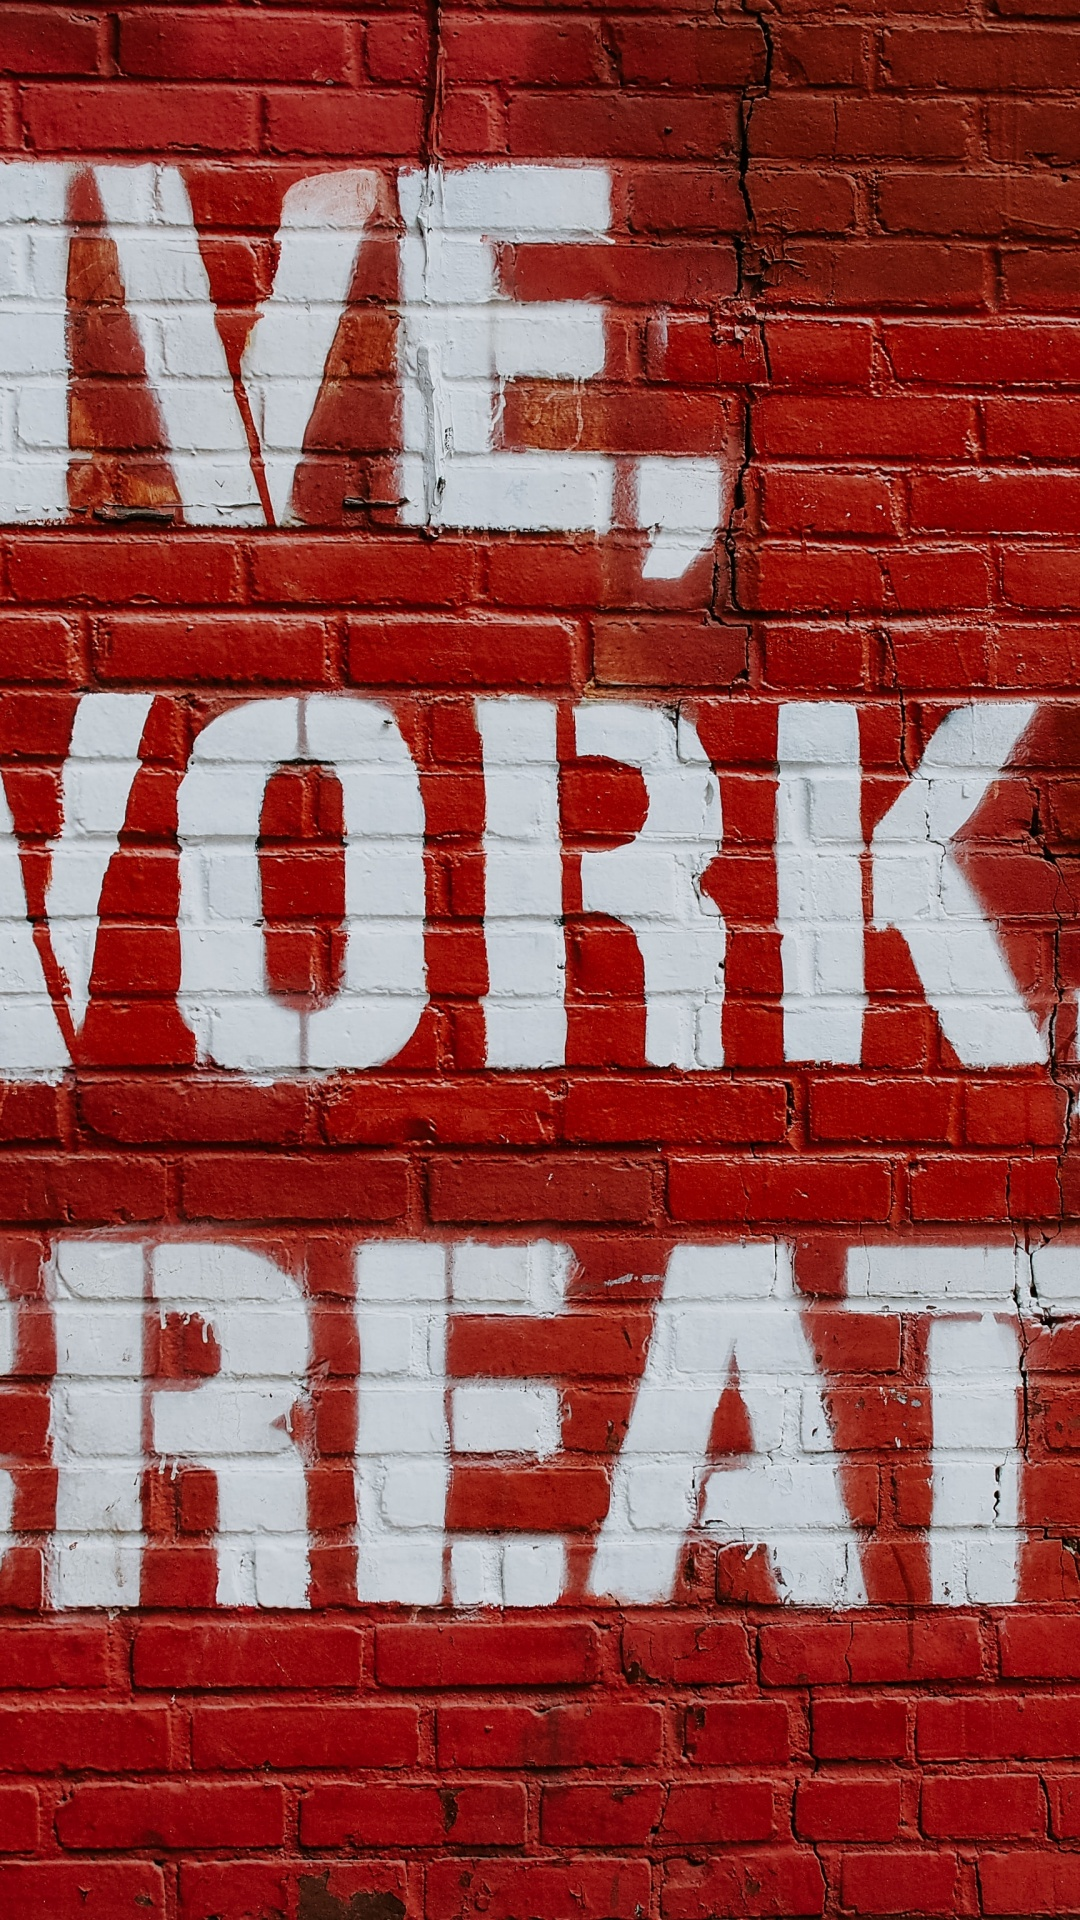 Live 4k Wallpaper Work Create Brick Wall Red Motivational Inspirational Quotes Quotes 1414